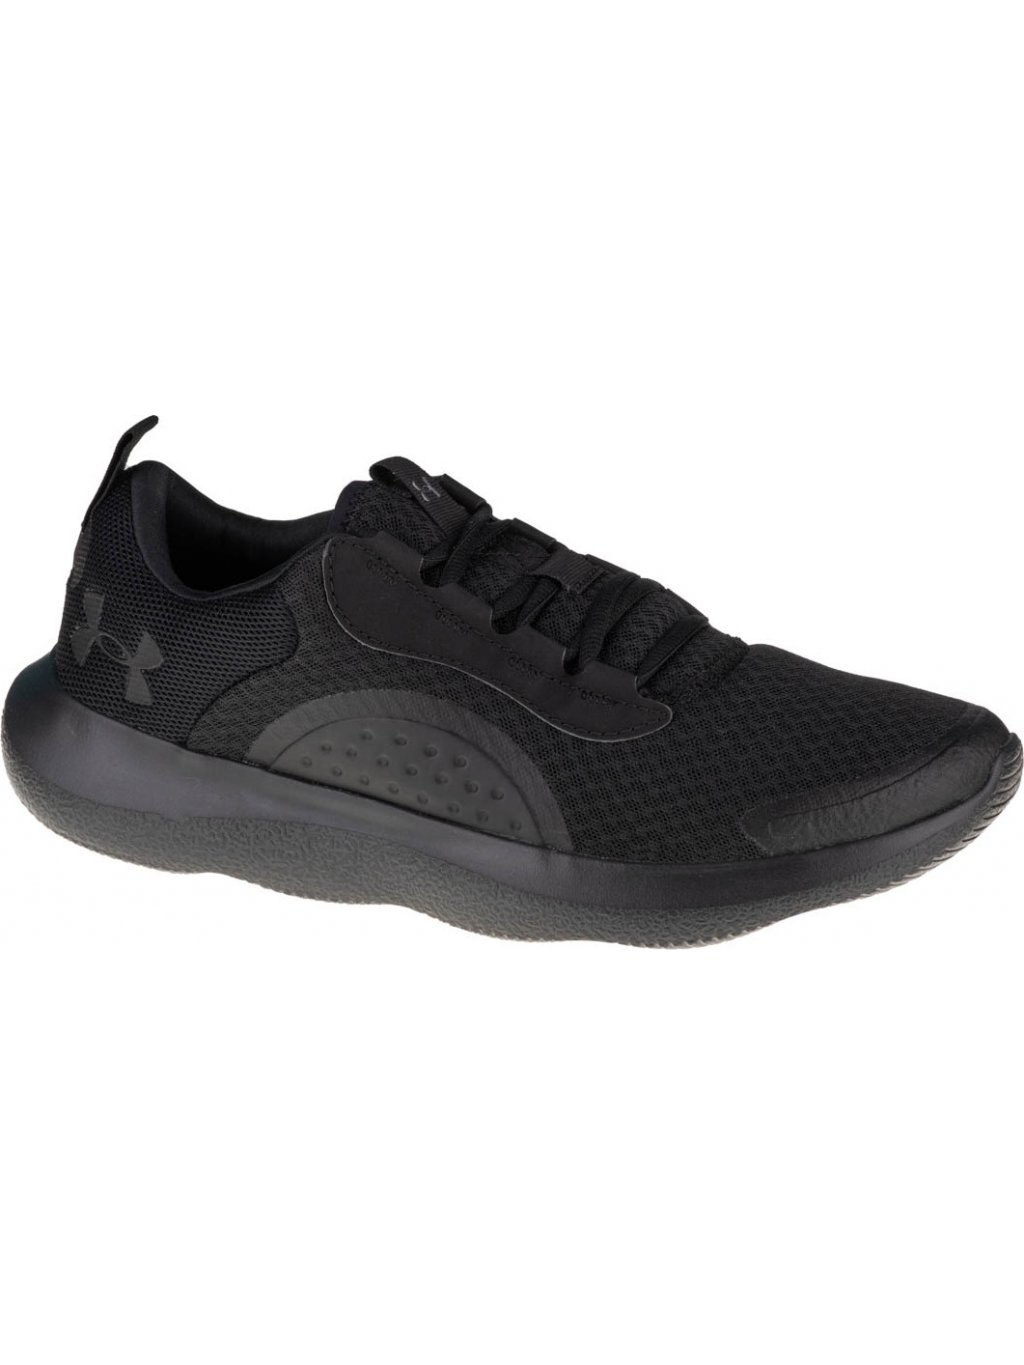 UNDER ARMOUR VICTORY 3023639-003